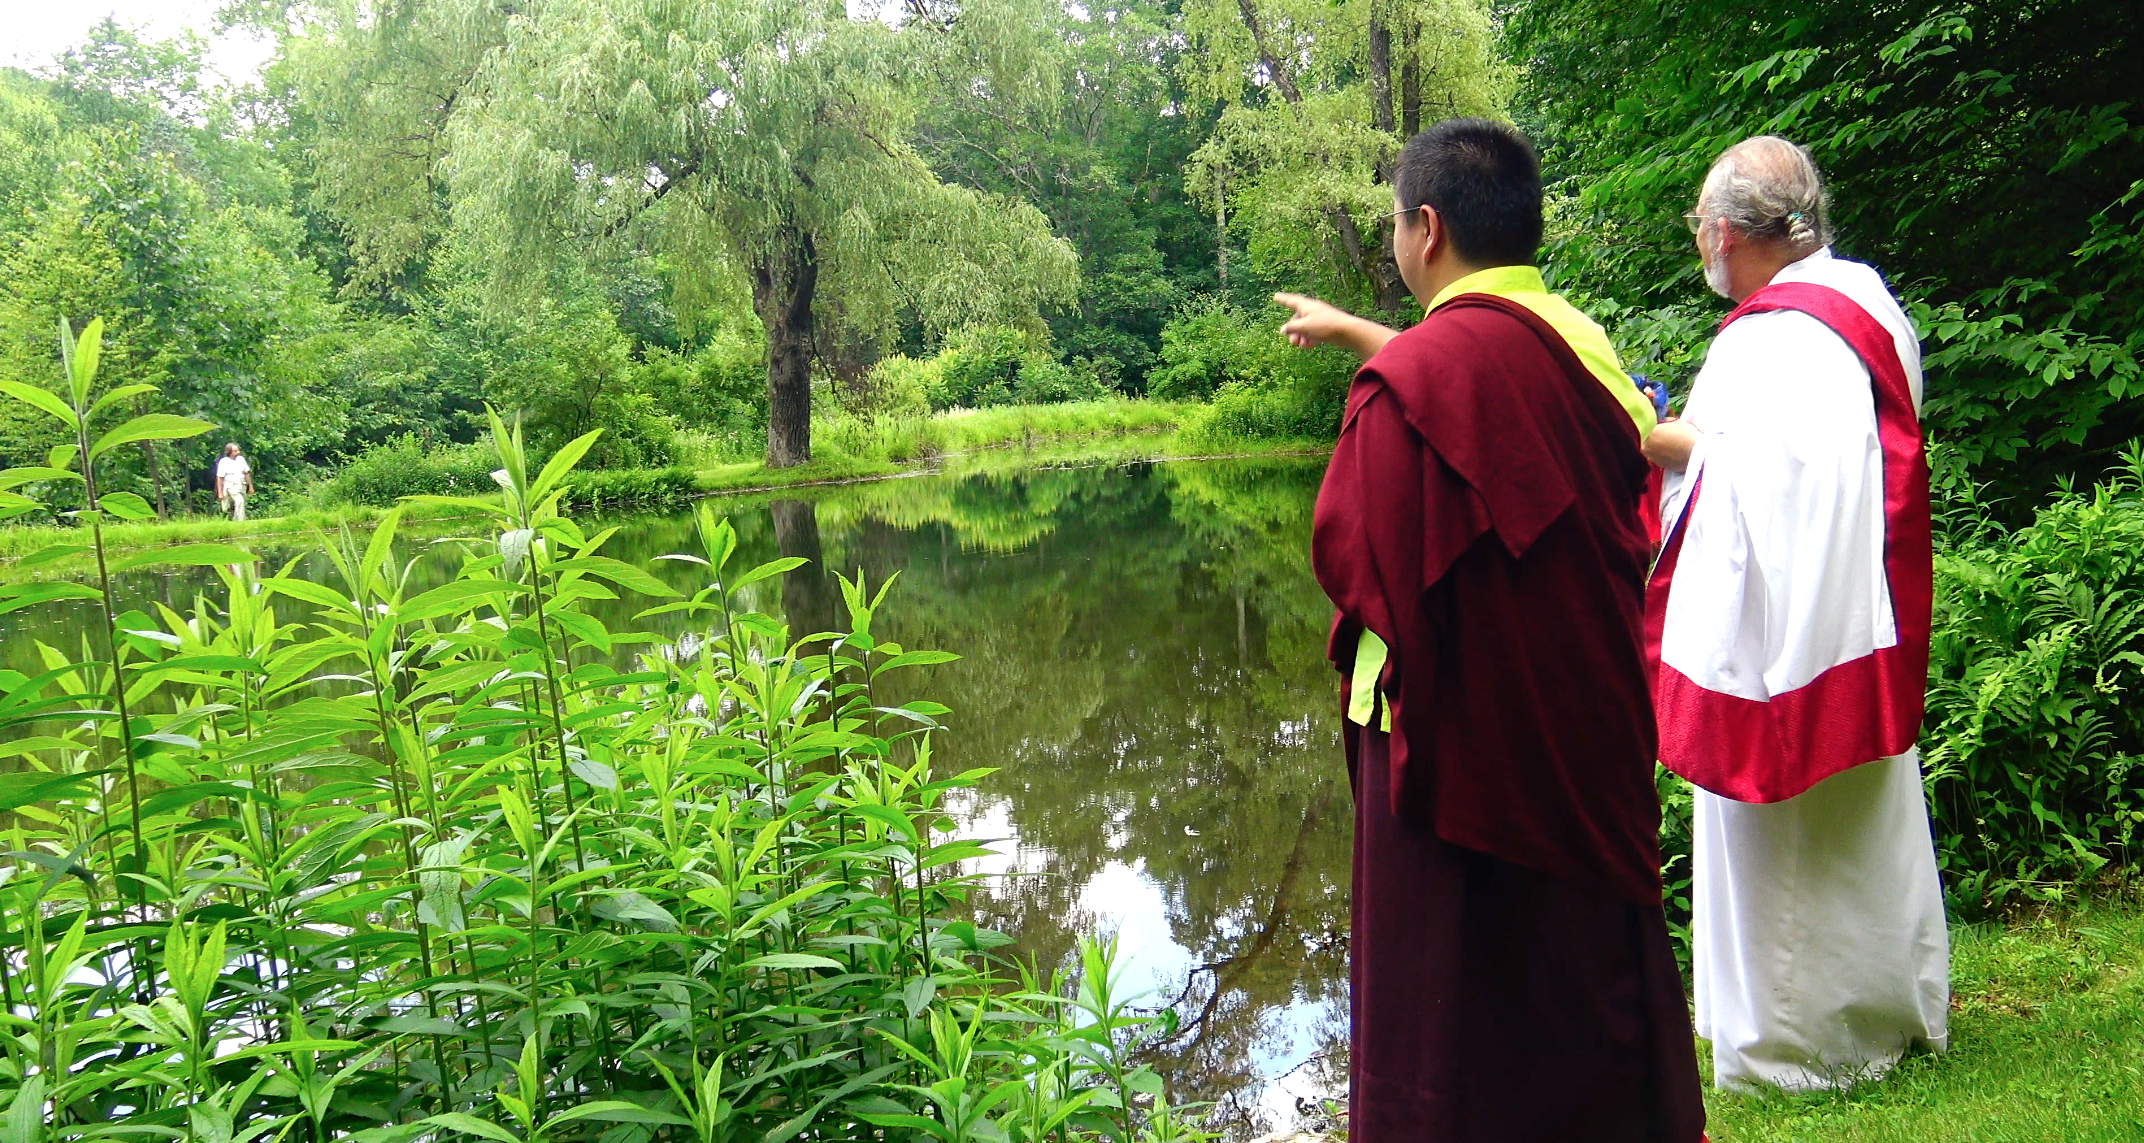 Rinpoche offering instruction on placement of sacred art works and supports